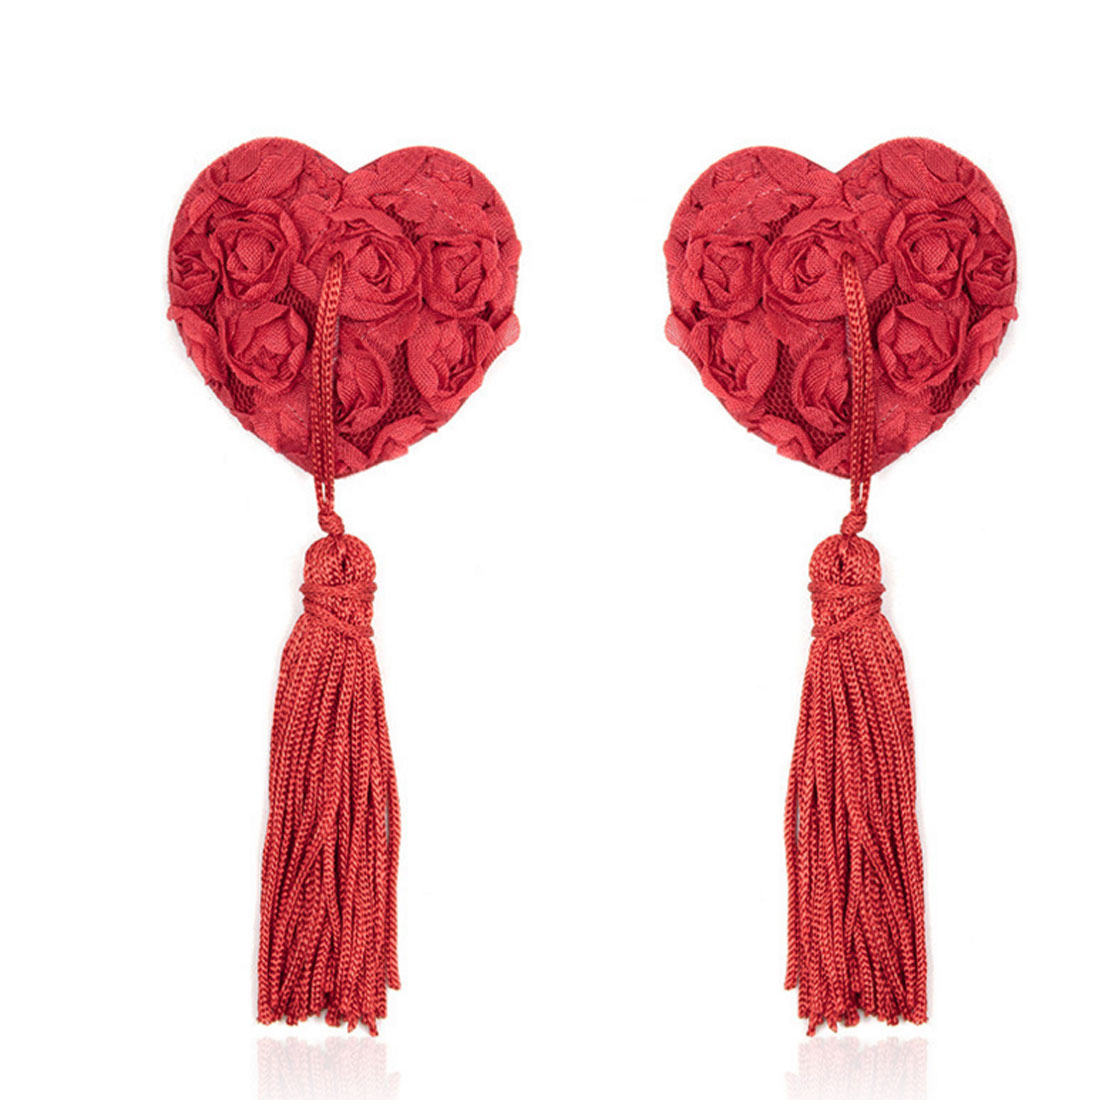 Hot 2pcs/set Self Adhesive Sequin Tassel Cover Fur Red Ribbon Rose Heart Shape Bra Nipple chest sticker Pasties Breast Petals